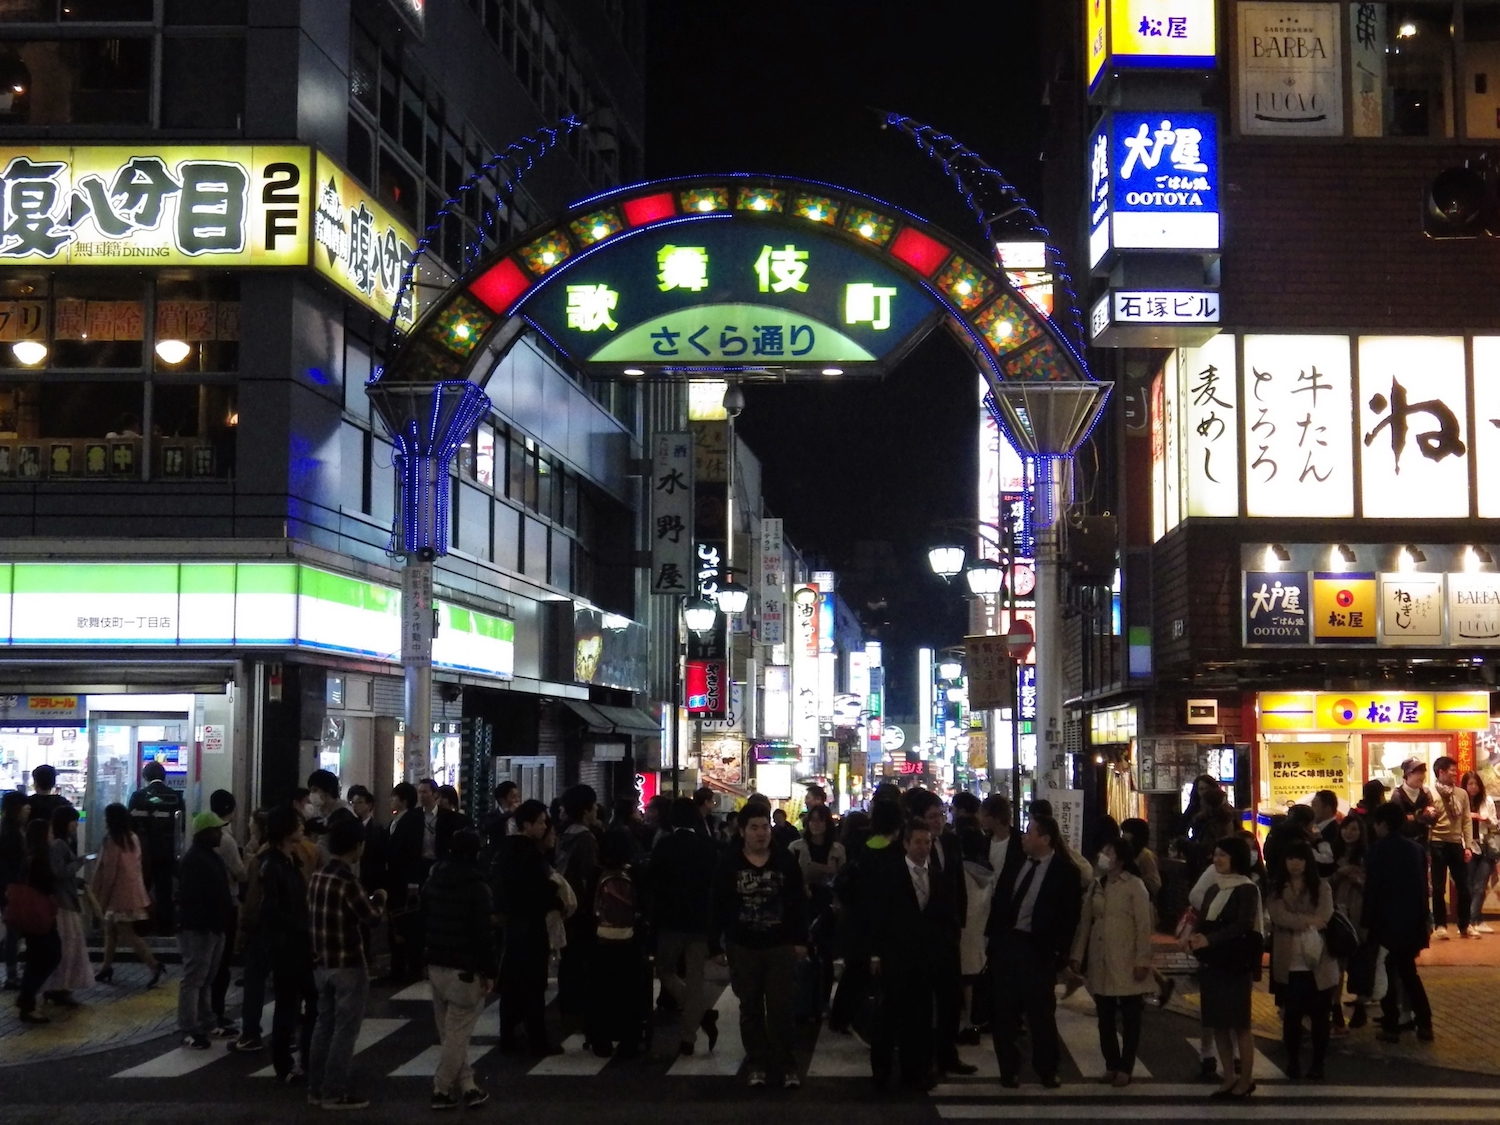 The entrance gate to Sakura Dori, the street in Kabukicho where Robot Restaurant is located.